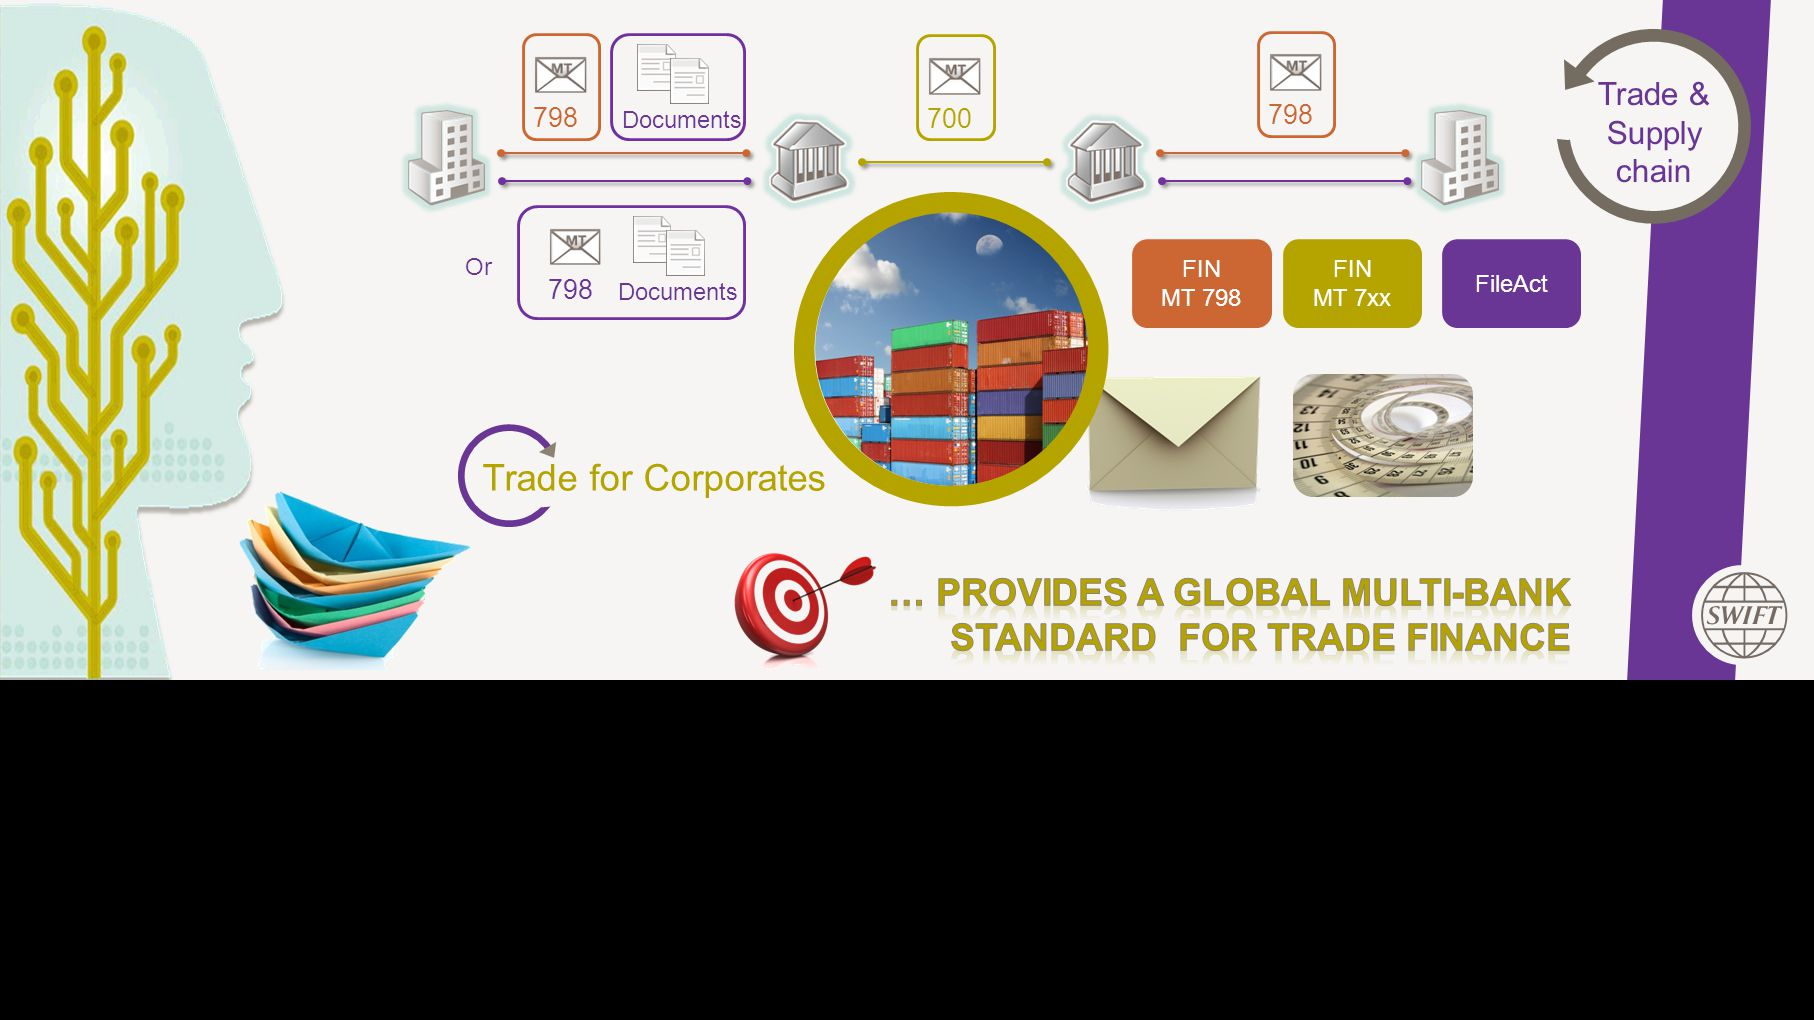 This Area Will Not Be Seen Trade for Corporates 798 Documents 798 Documents 700 798 FIN MT 798 Or FIN MT 7xx FileAct Trade & Supply chain